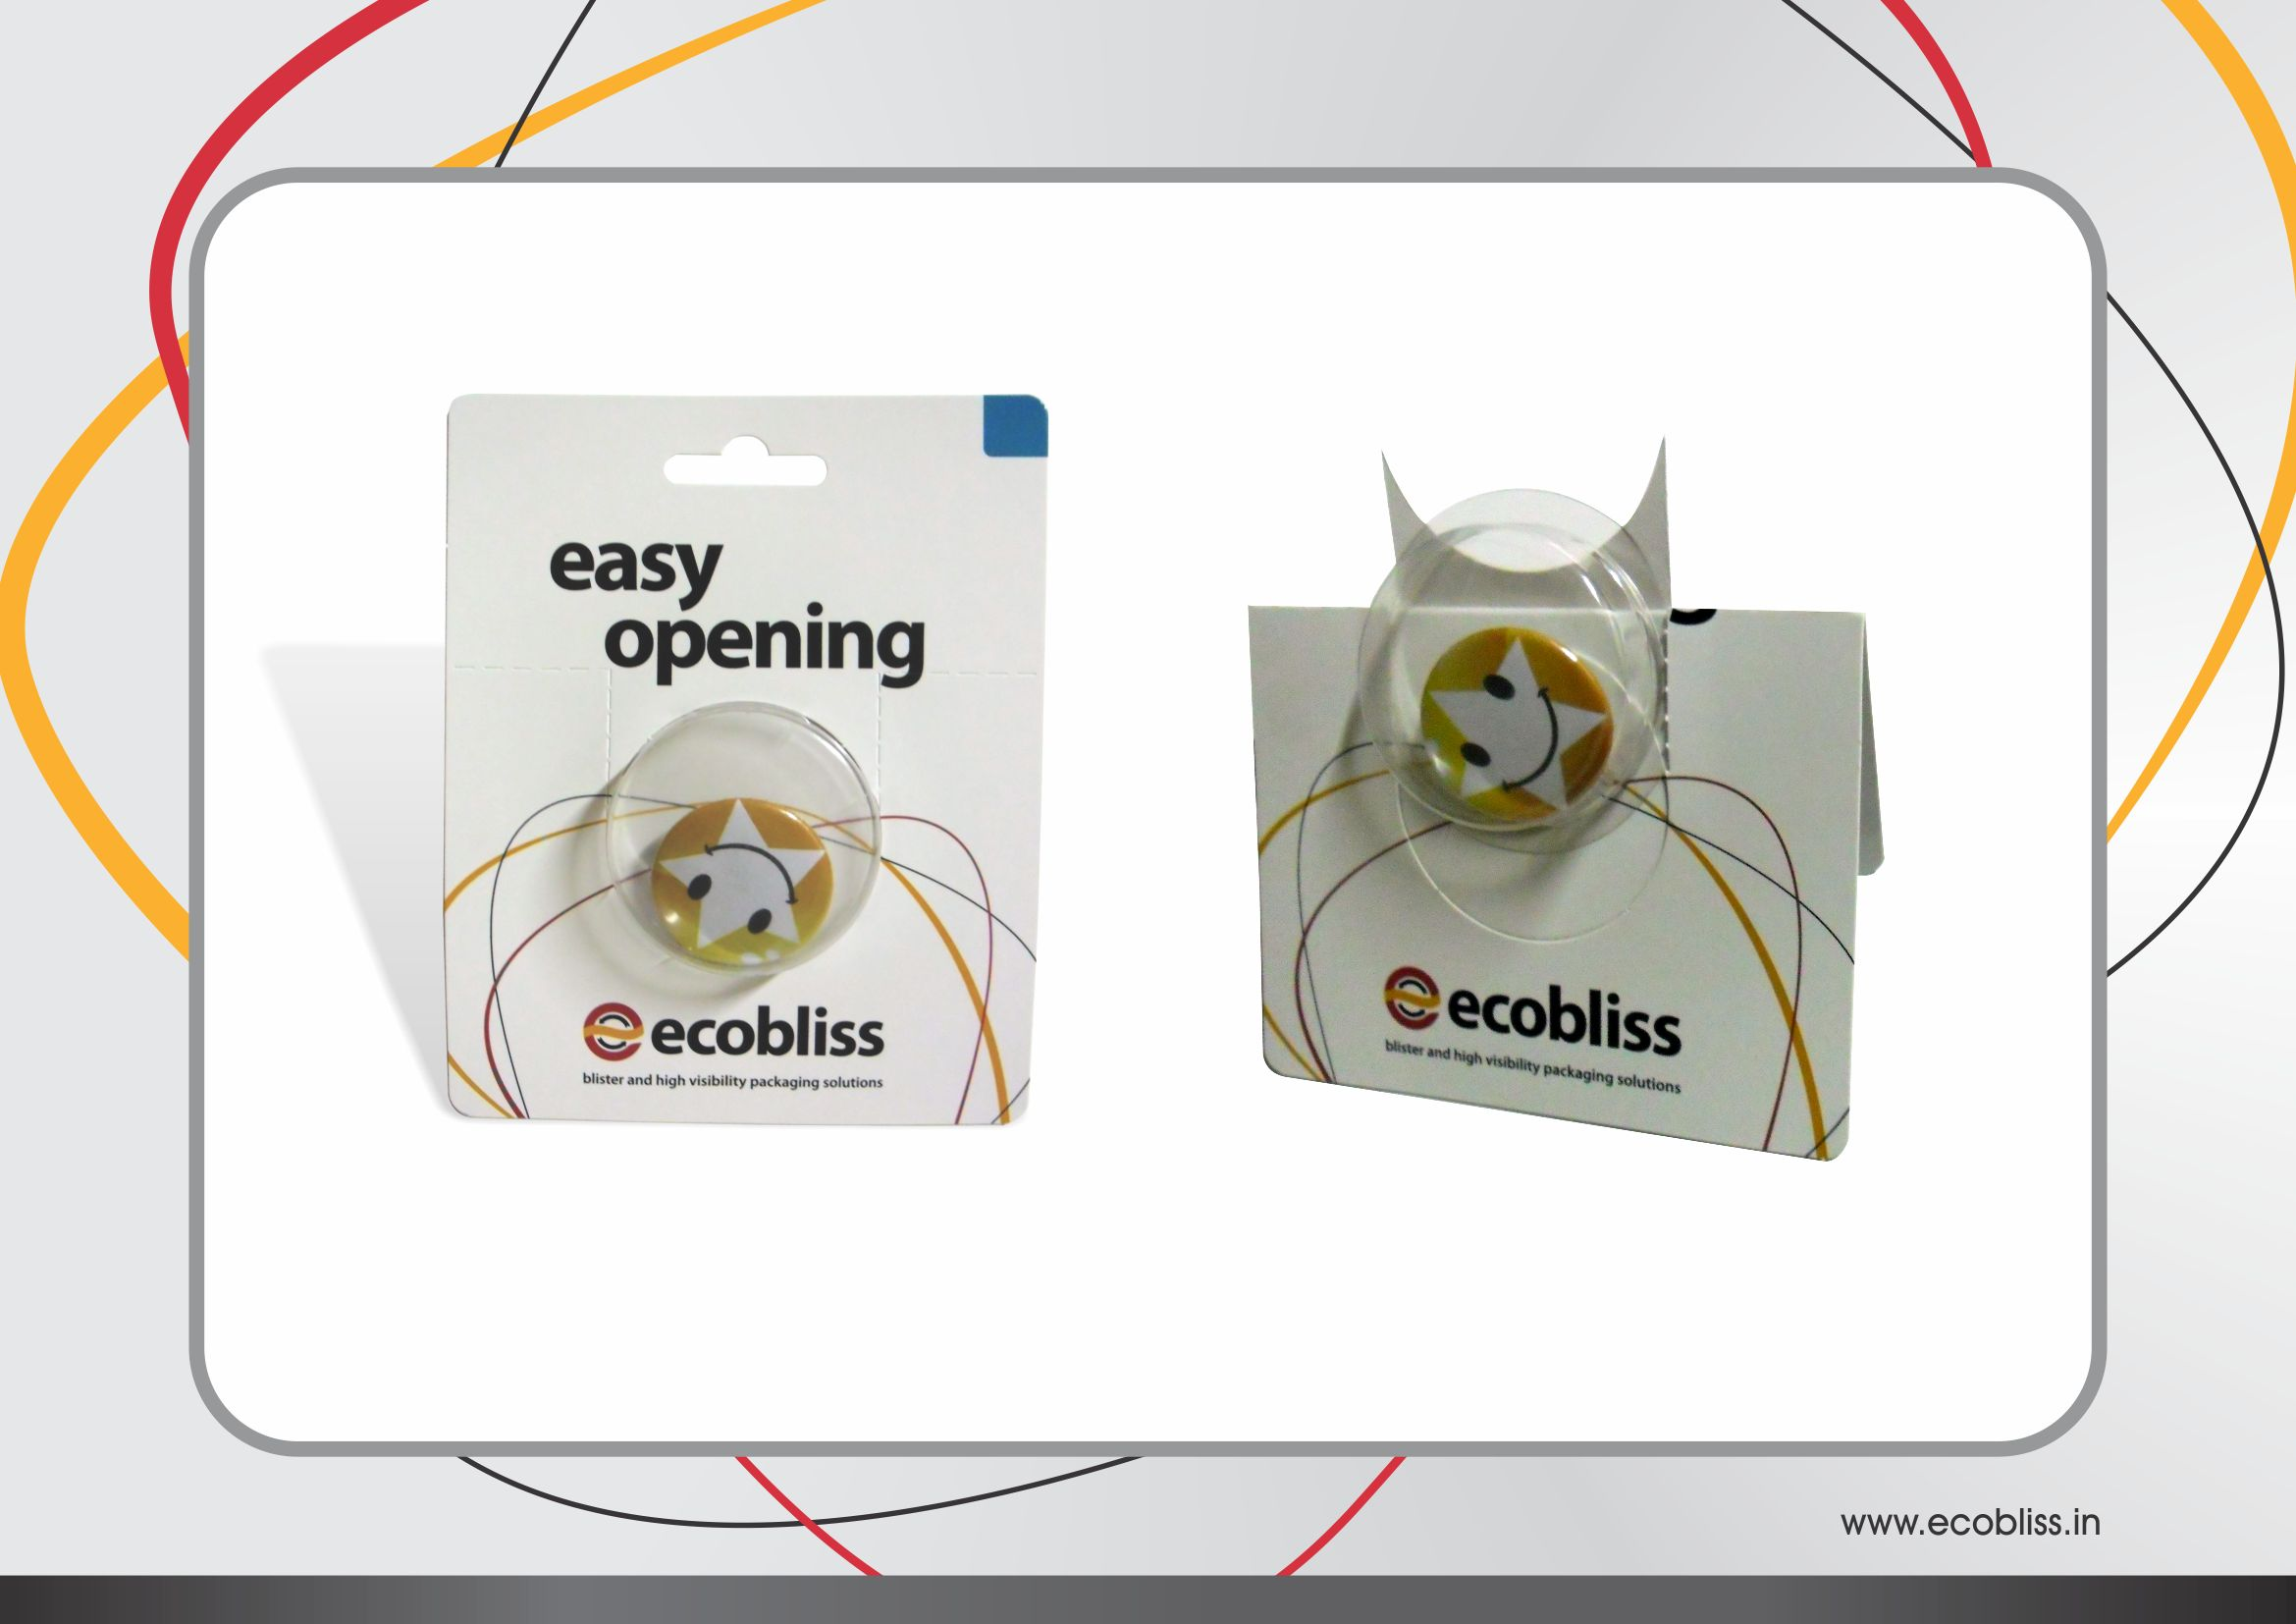 Ecobliss Launches Easy To Open Blister Pack